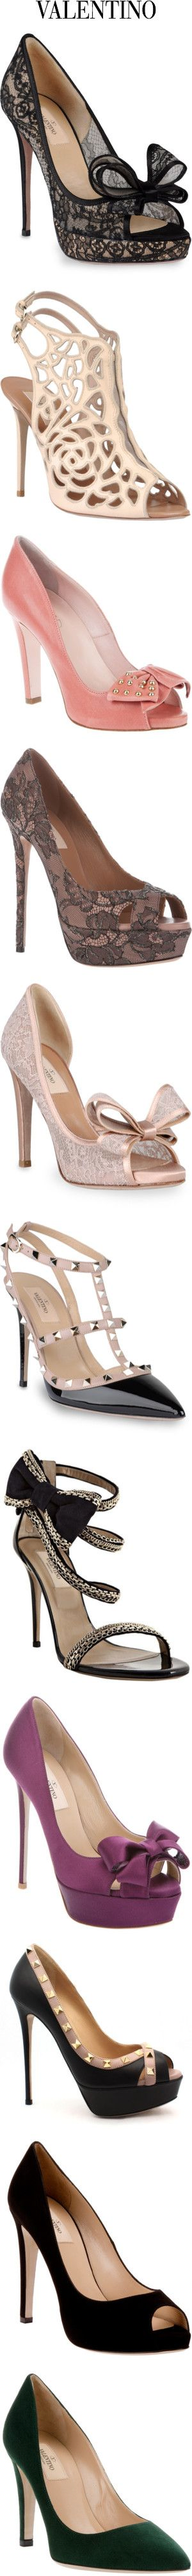 A collection of gorgoues Valentino heels, sandals and pumps! Which ones are your favorite?: Valentino W, Lady Shoes, Gorgeous Shoes, Valentino Heels, Valentino Did, Gorgou Valentino, High Heels, Valentino Shoes, Gorgeous Valentino